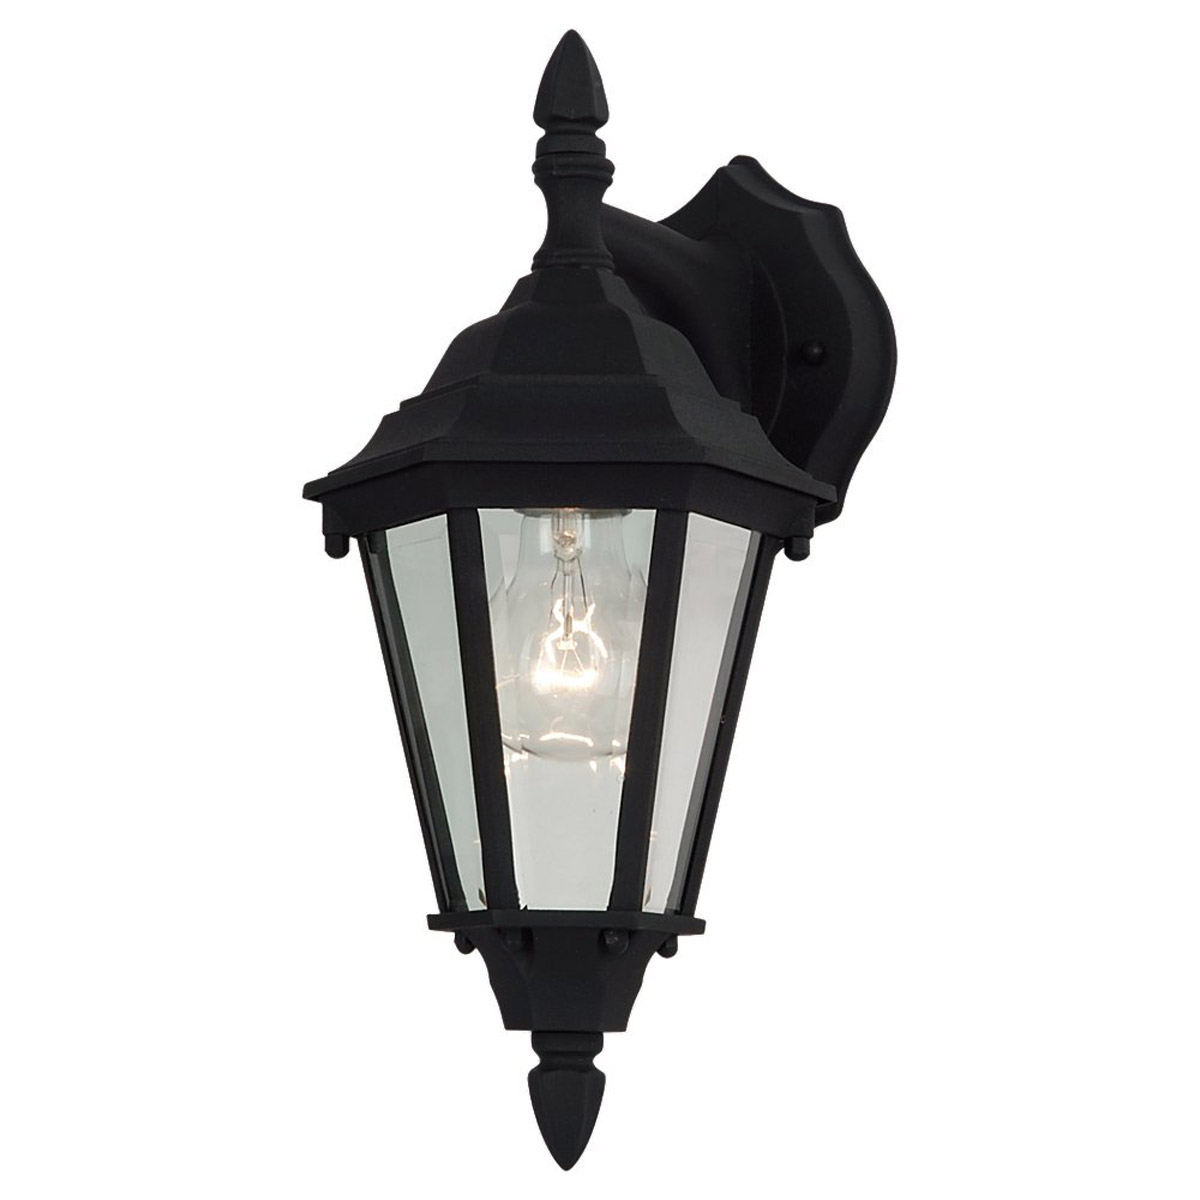 Sea Gull Lighting Bakersville 1 Light Outdoor Wall Lantern in Black 88938-12